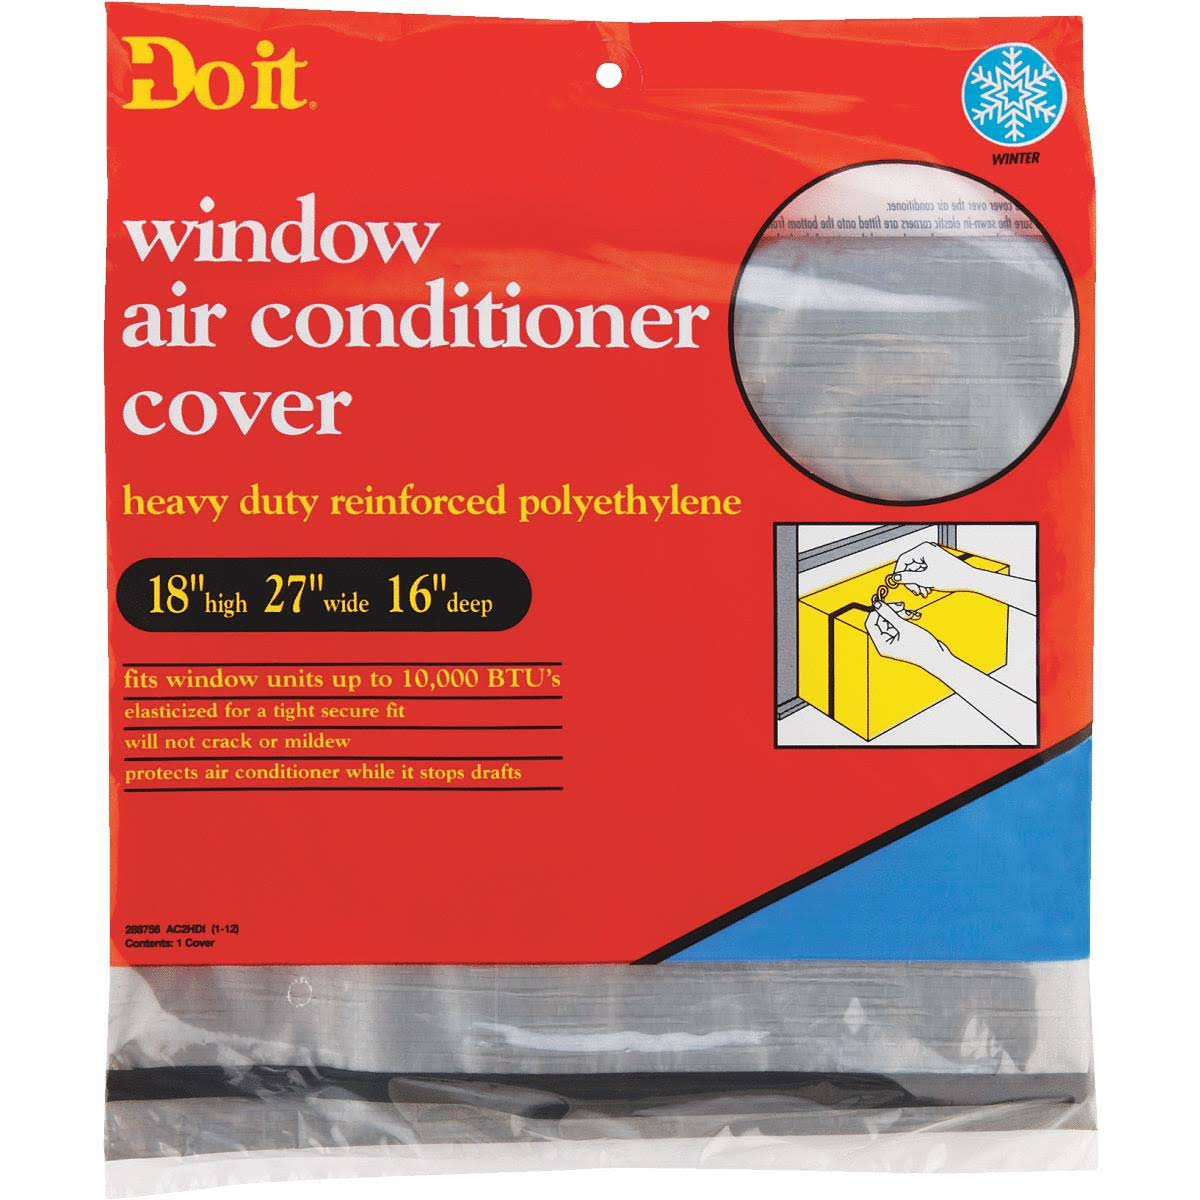 Do It Air Conditioner Cover - 18in x 27in x 16in